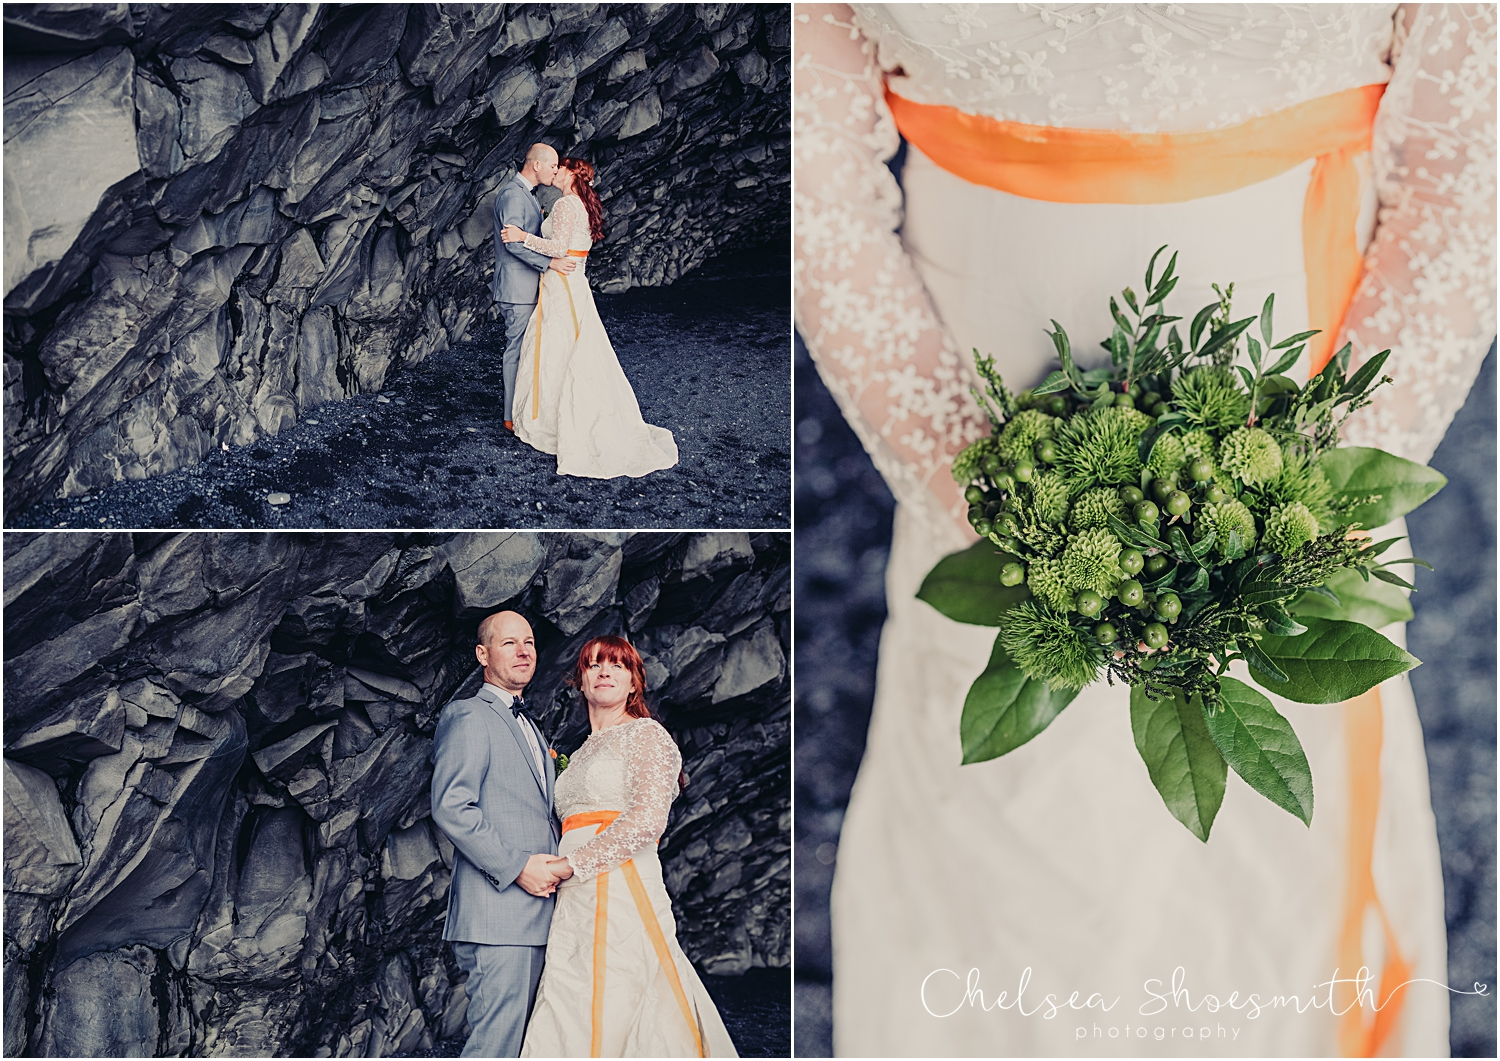 (17 of 24)Laura & Kevin   -  Chelsea Shoesmith Photography